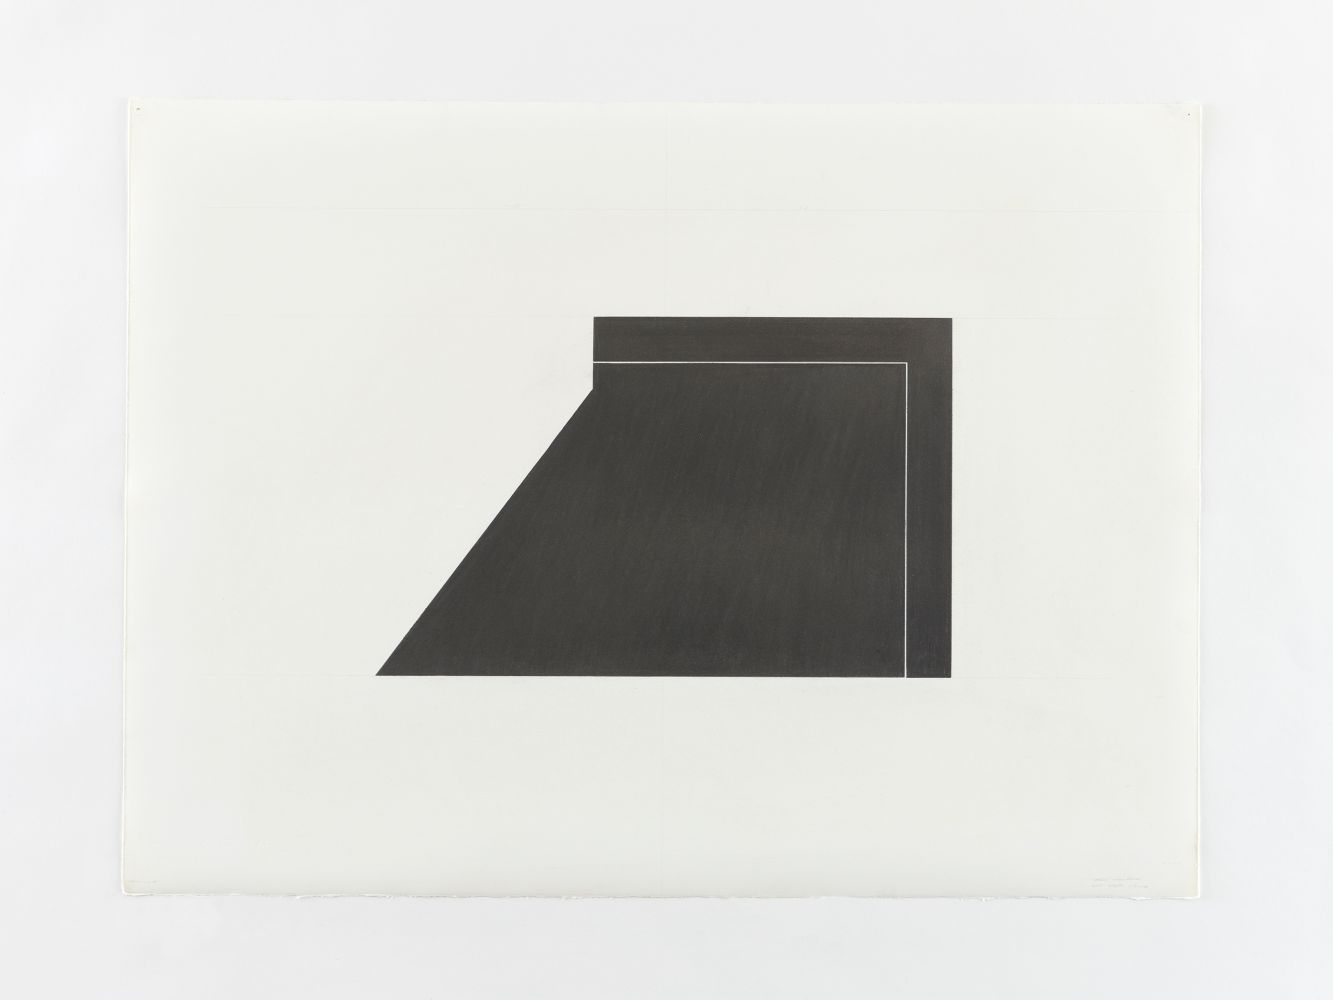 Ted Stamm 78-W-2E (Wooster), 1978 graphite on paper 22 1/4 x 29 7/8 inches